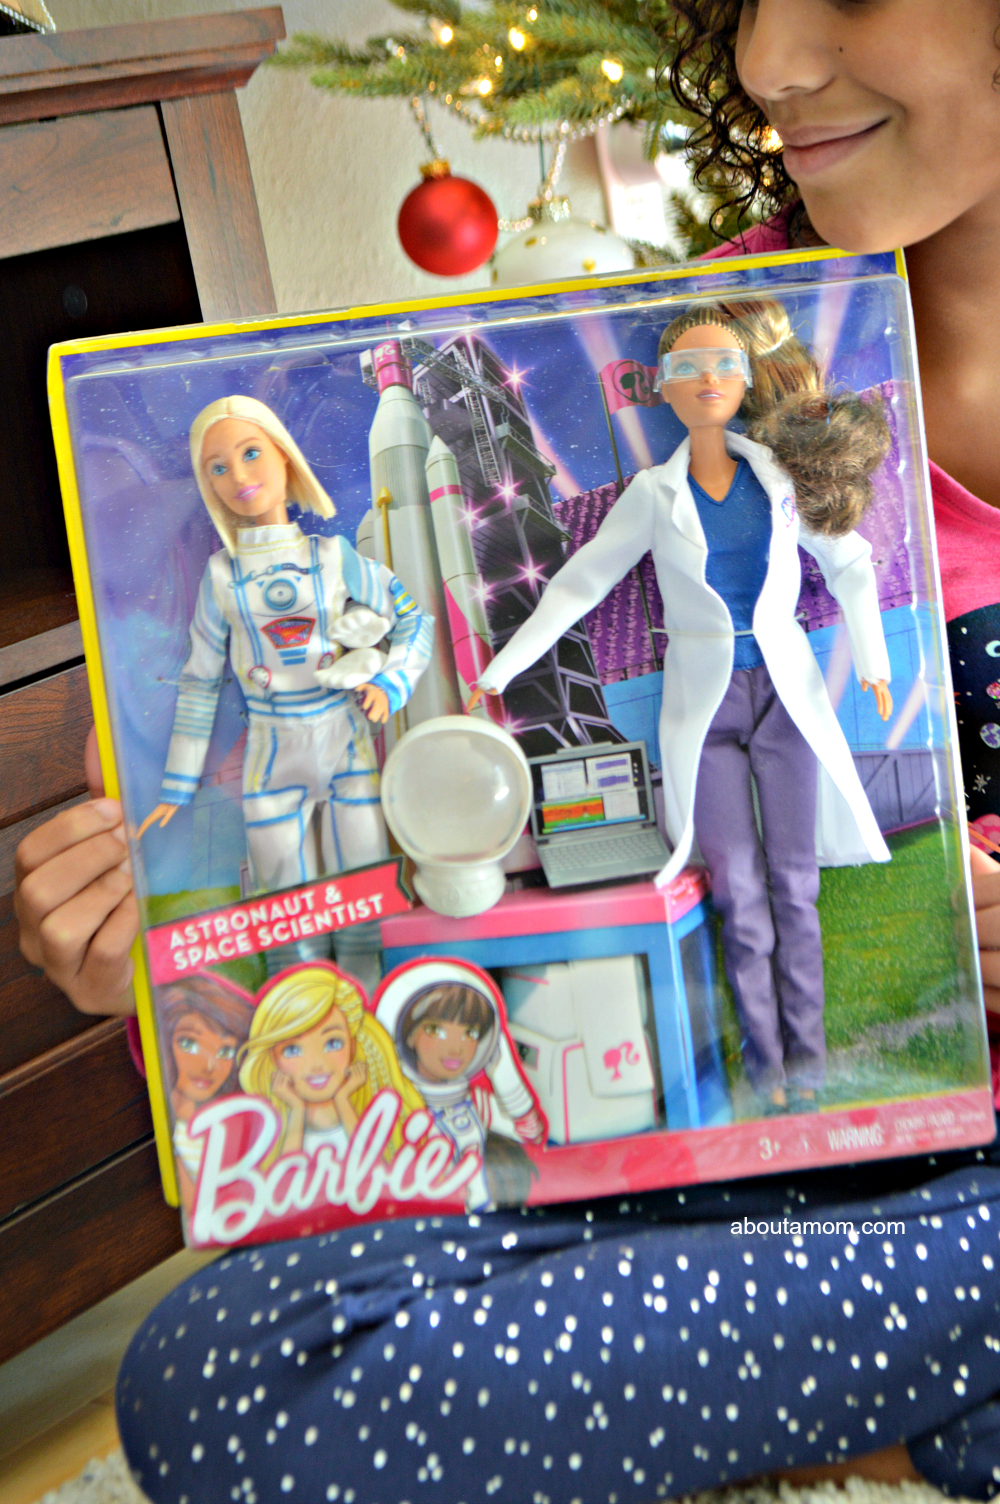 When a little girl plays with Barbie Career Dolls, she imagines everything she can become. From a movie star to a doctor, ballet instructor to NASA Astronaut, Barbie can help inspire your daughter to grow up and become anything!